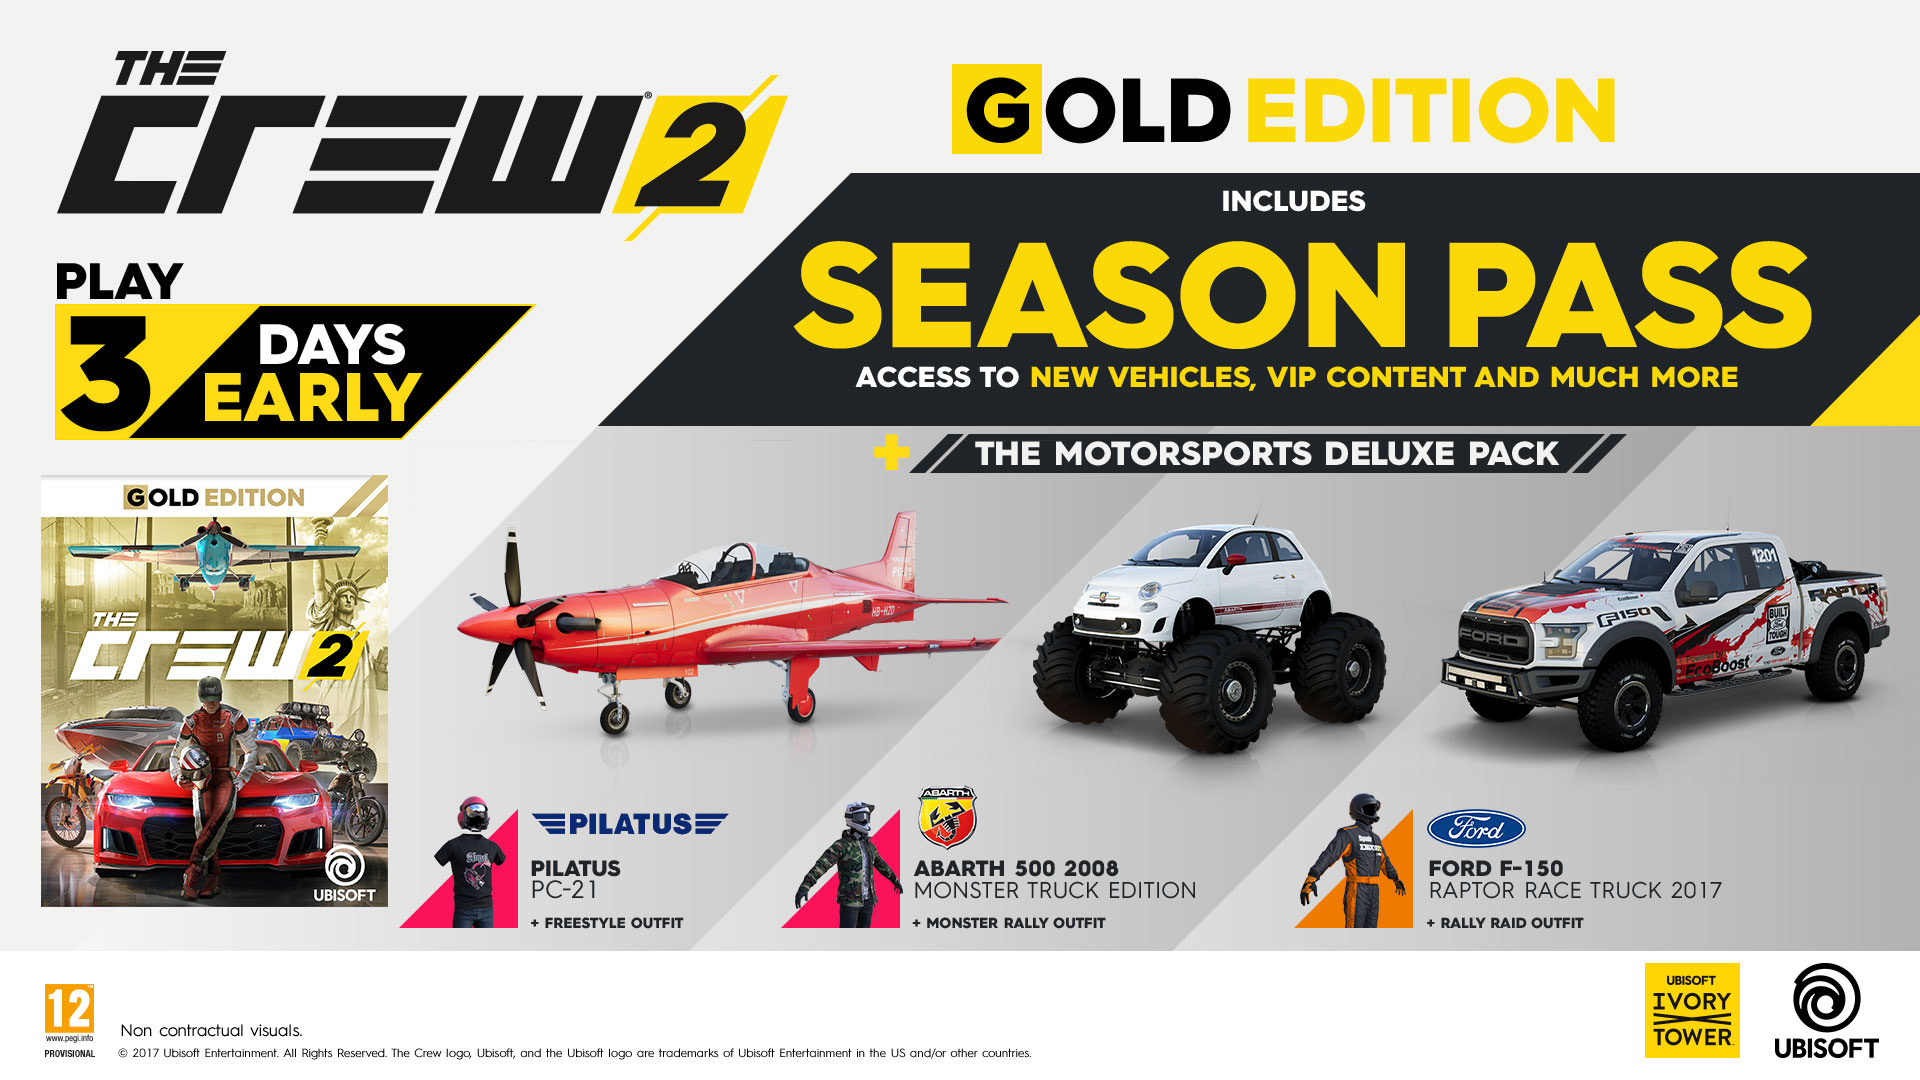 This picture shows the stuff you will get by ordering a Gold edition of The Crew 2.